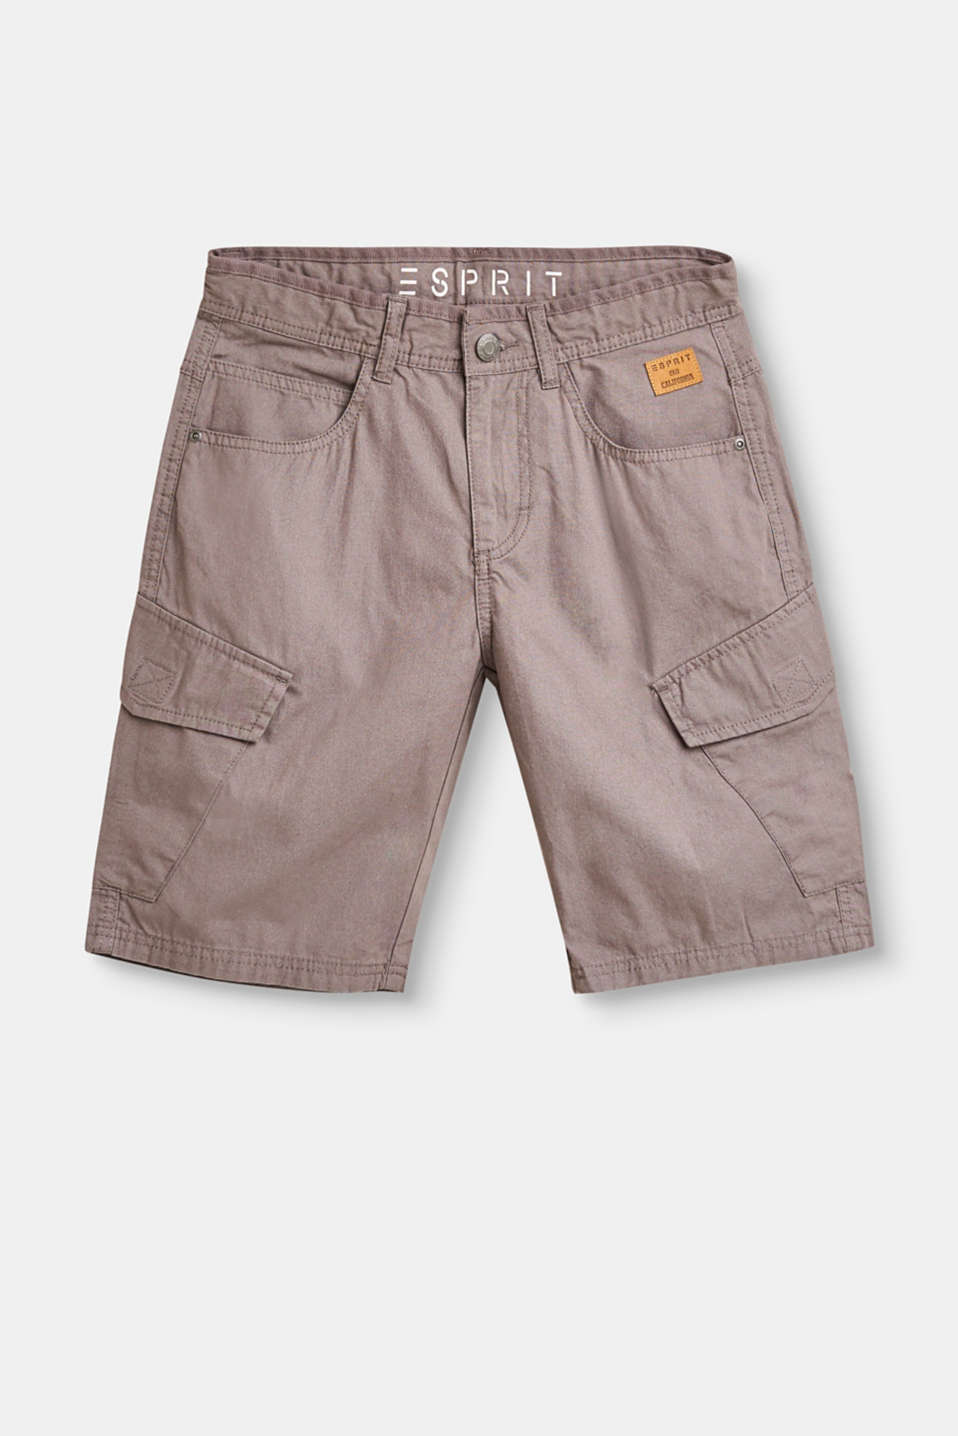 Esprit - Woven cargo shorts in 100% cotton